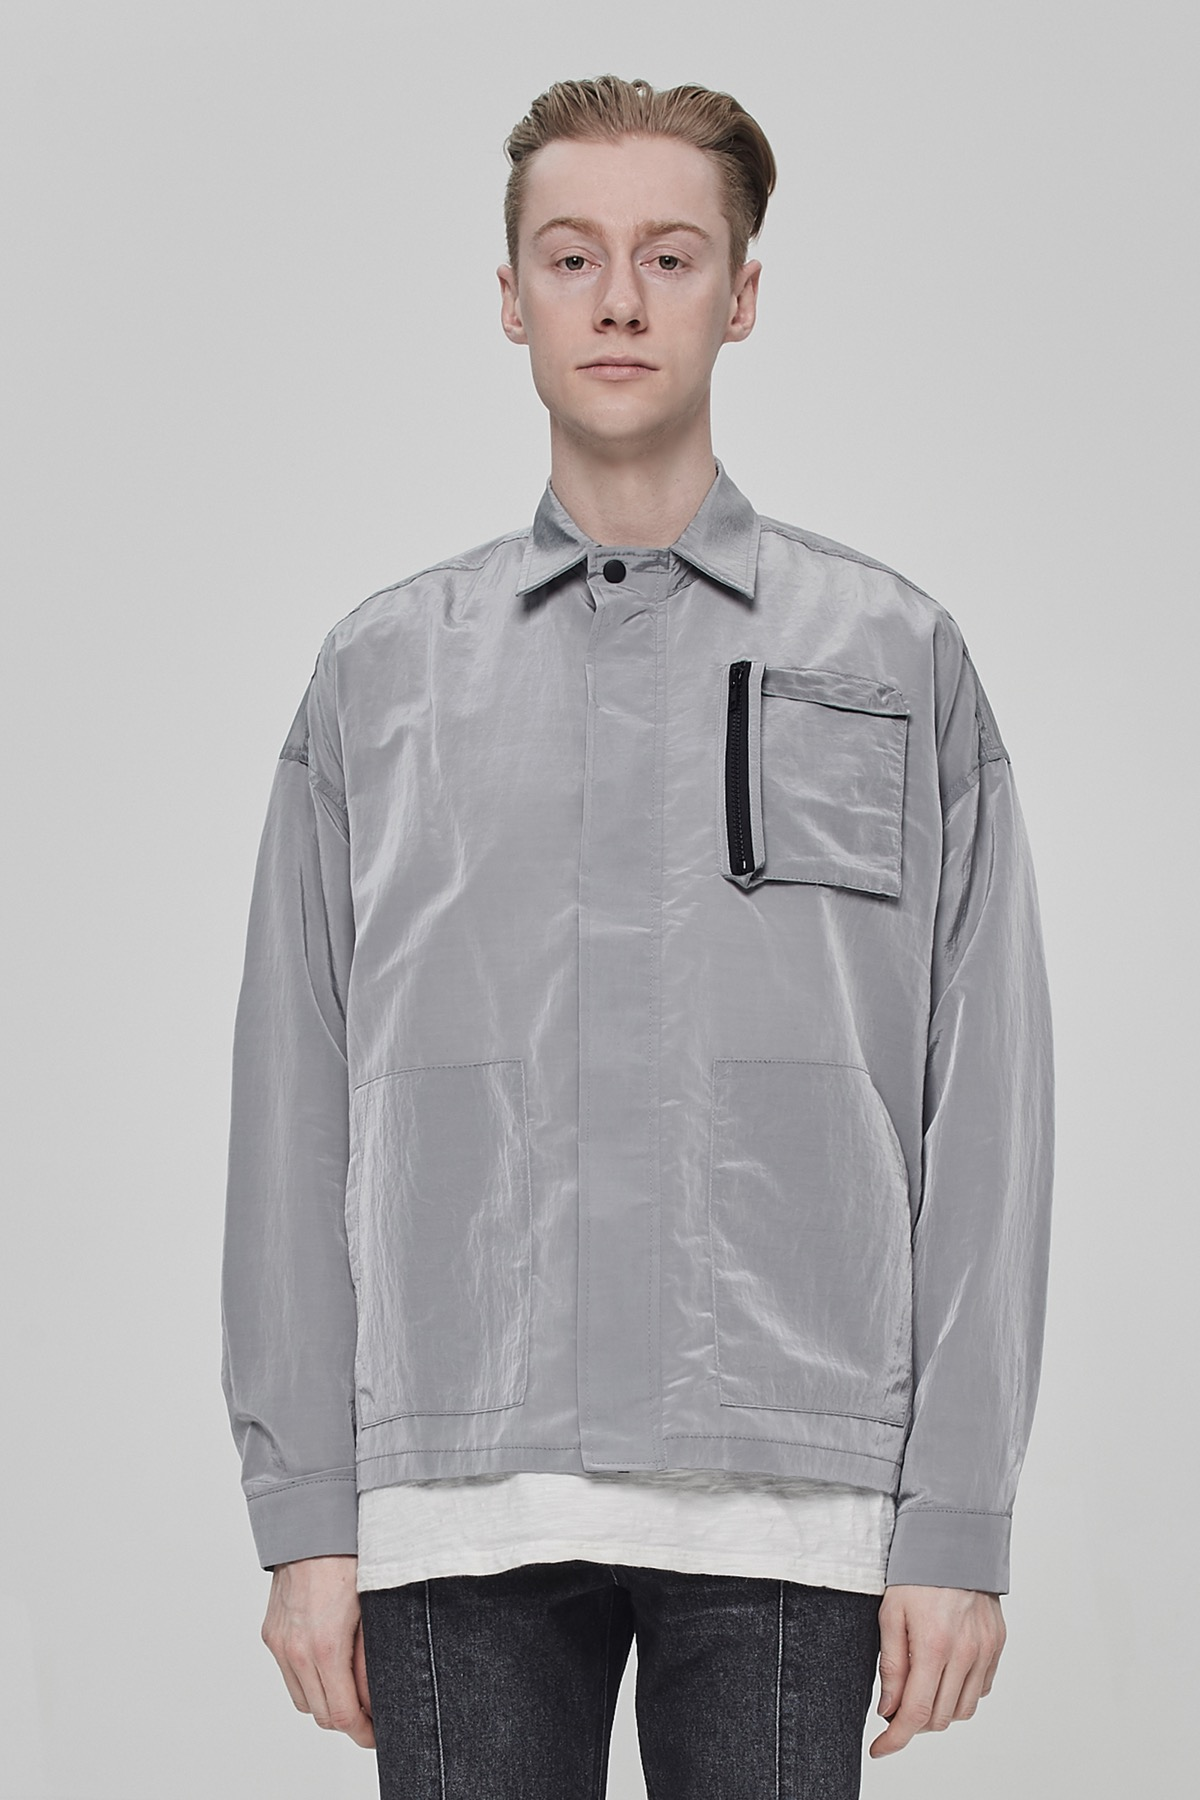 SILVER METAL POCKET JACKET V2